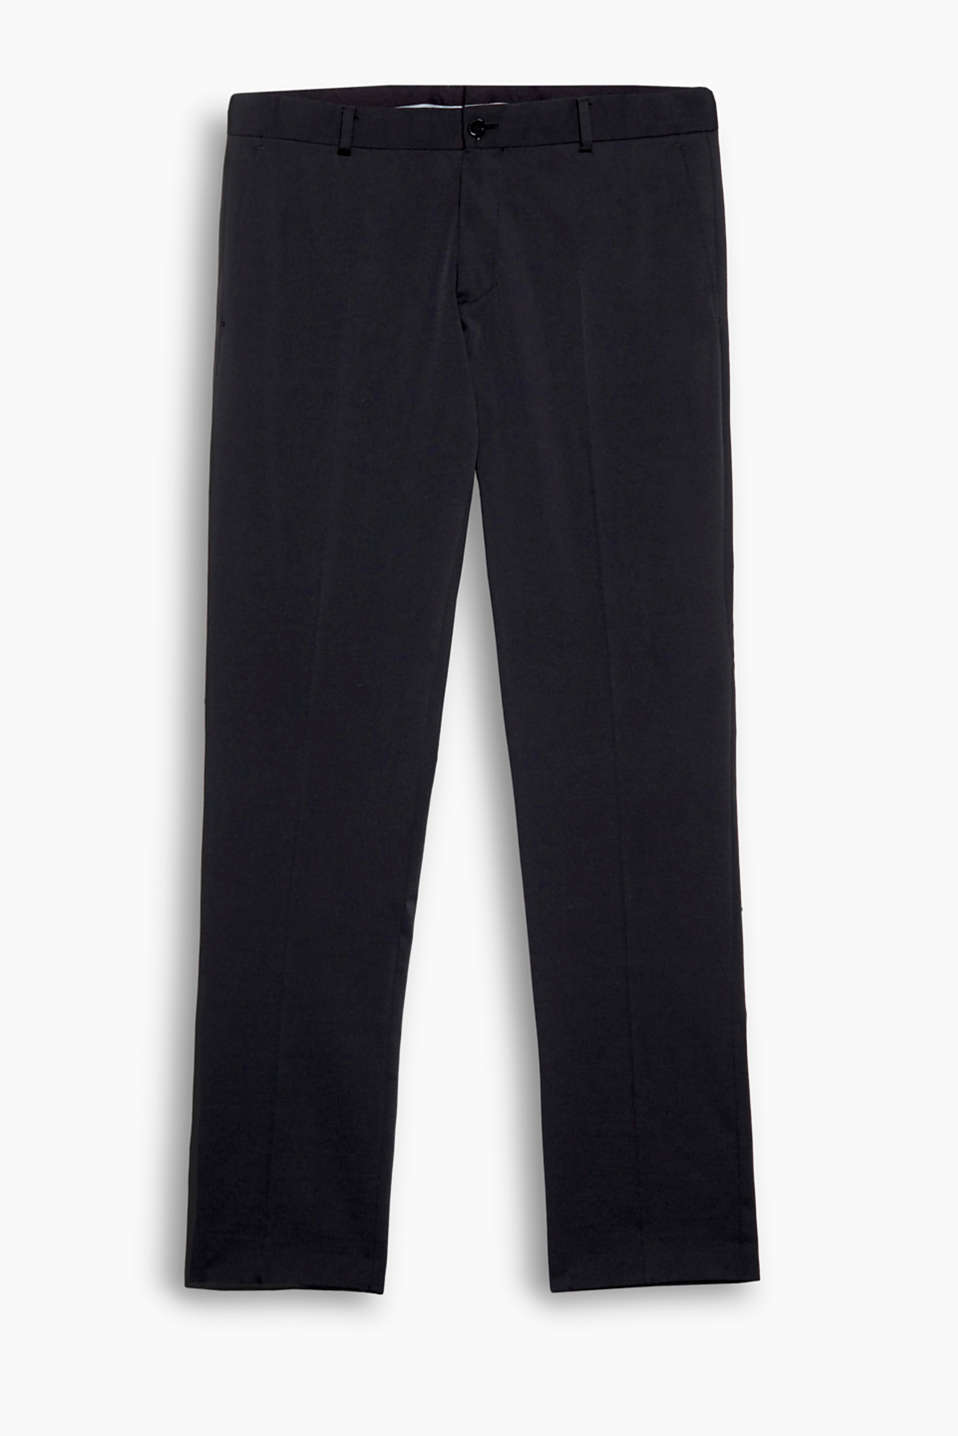 fluid and soft suit trousers with elastane for comfort and a high-tech texture